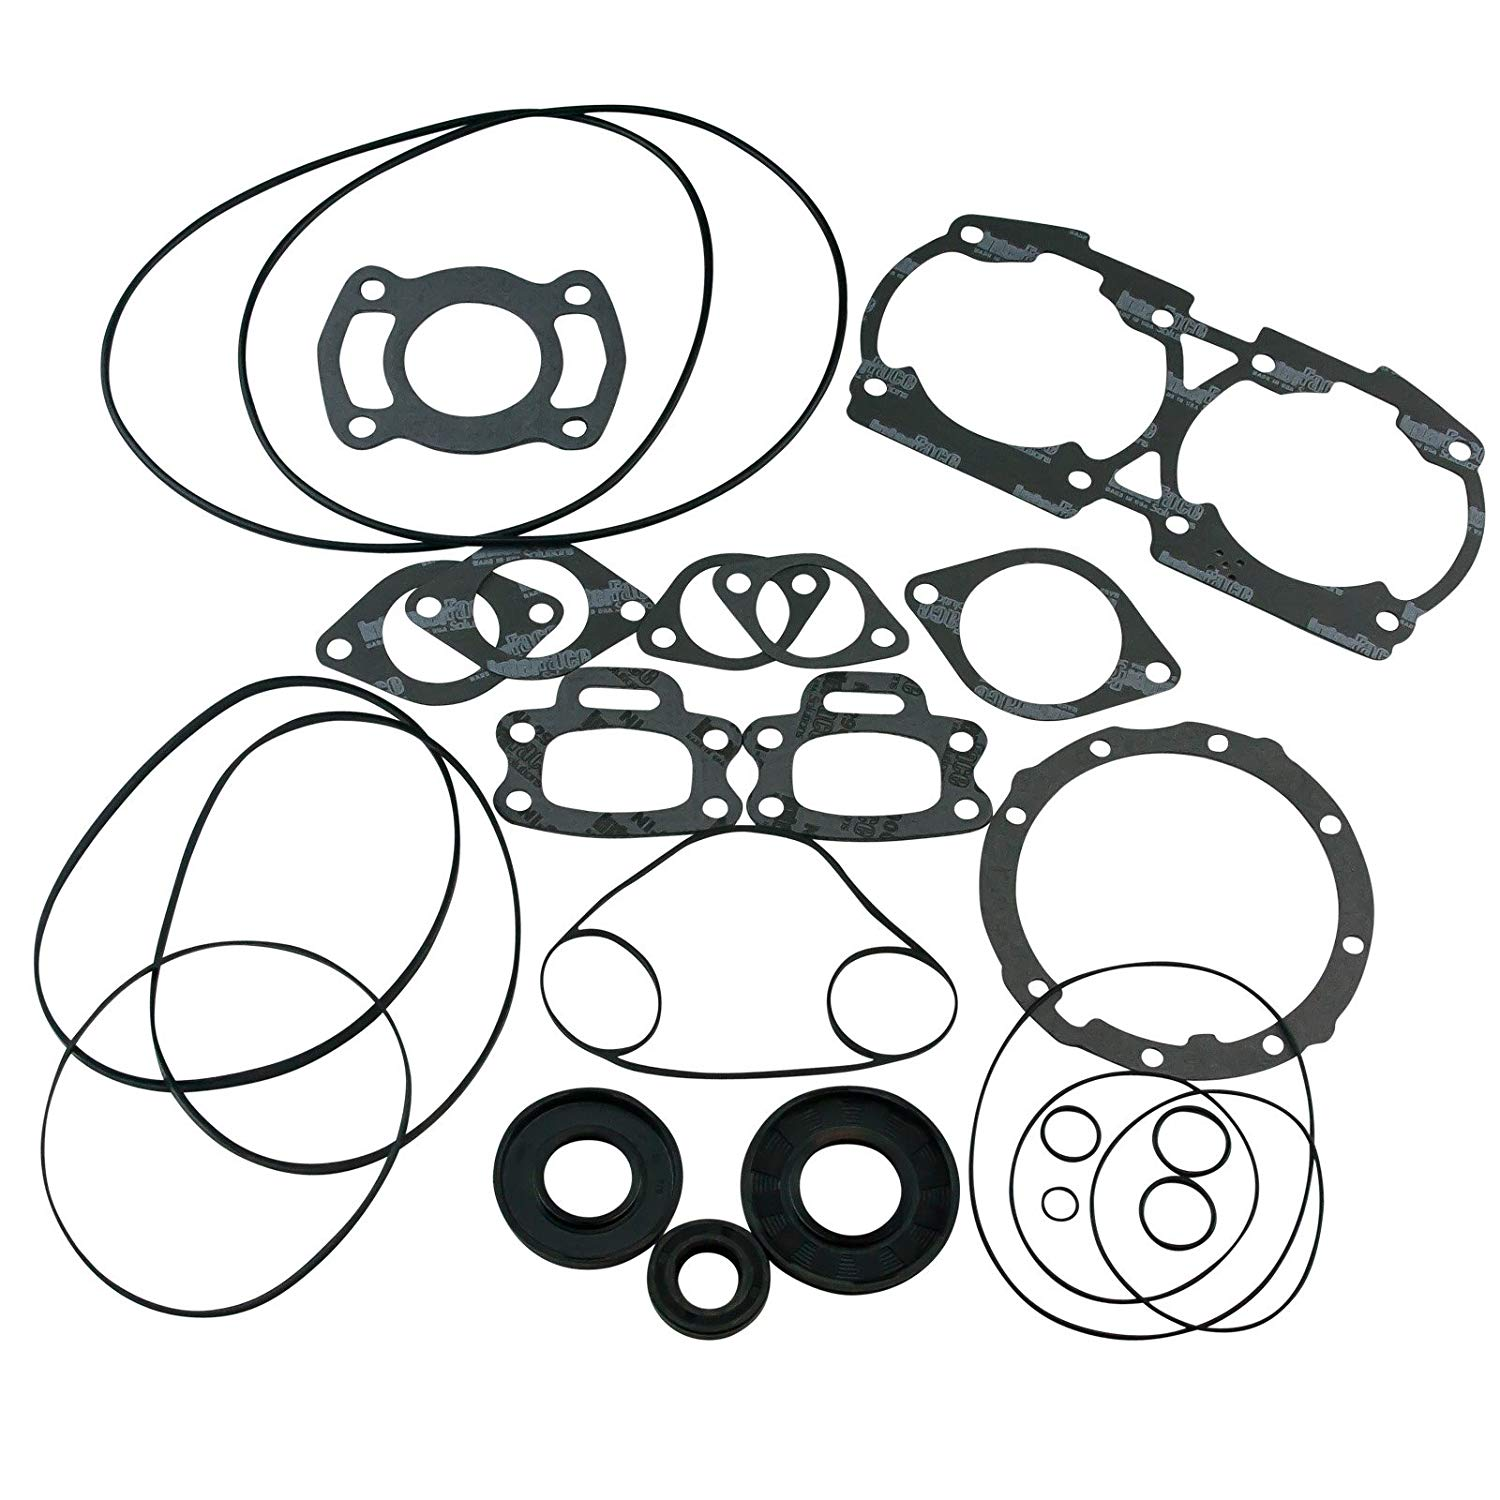 hight resolution of get quotations seadoo 717 720 complete gasket o ring kit gs gsi gti gtx hx spx